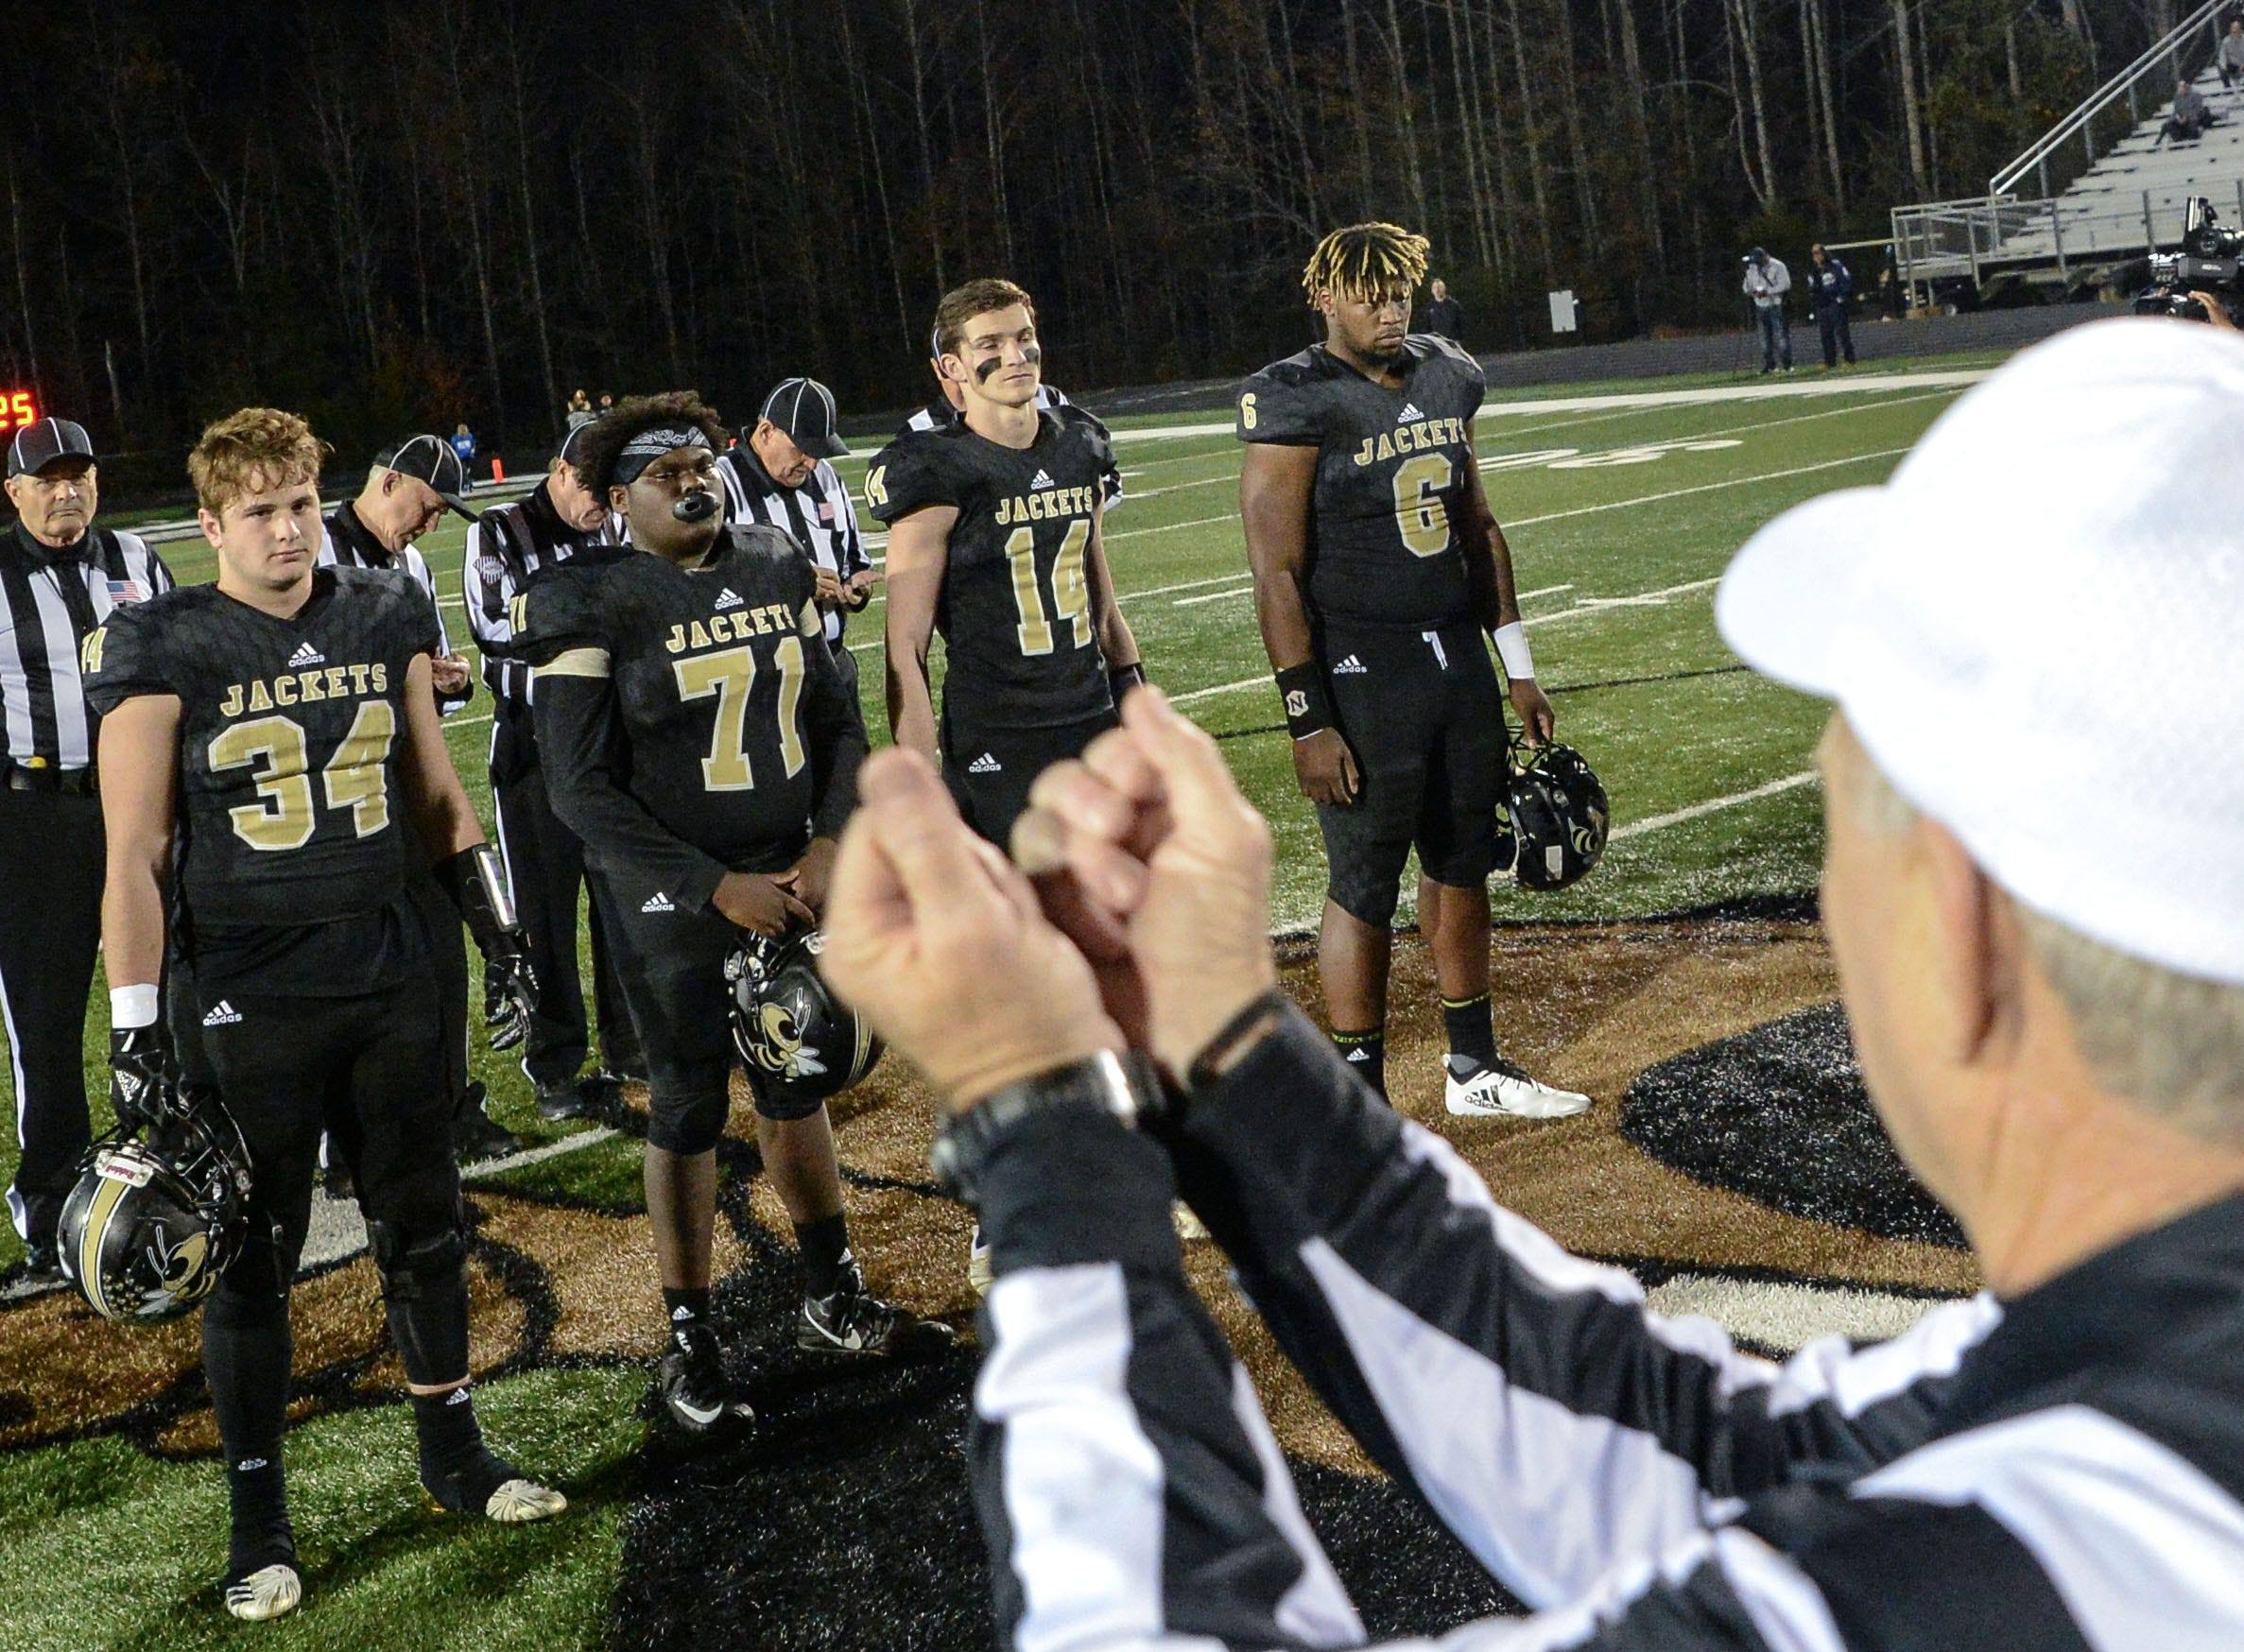 A referee signals Byrnes High School will take the opening kickoff, before the kickoff of the Class AAAAA state playoffs at TL Hanna High School in Anderson on Friday, November 30, 2018. Byrnes High School ran back the opening kickoff for a touchdown, but the Yellow Jackets came back and won 57-28.